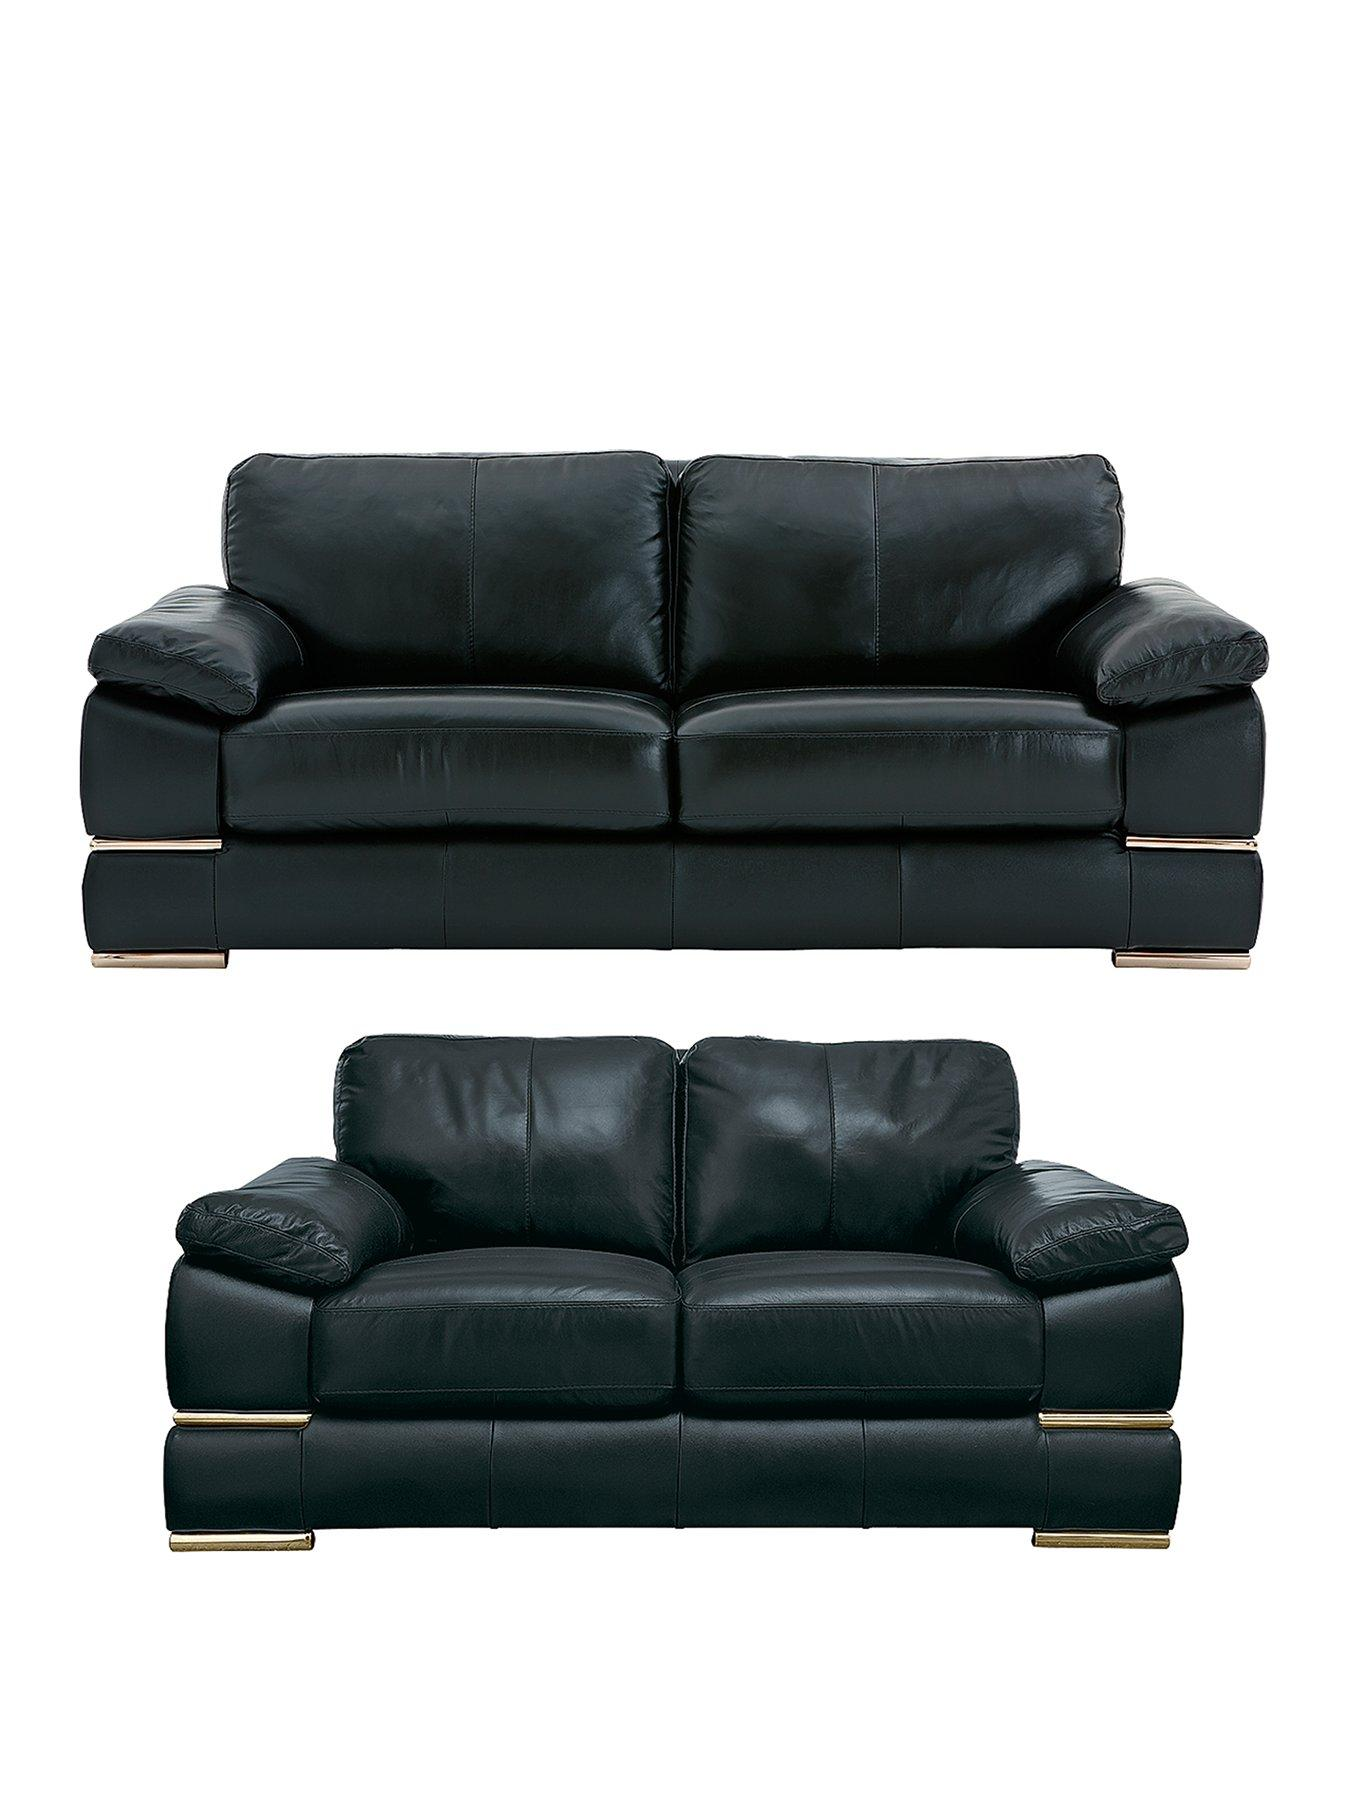 leather sofas cheap prices sectional primo italian 3 seater 2 sofa set buy and save littlewoods com